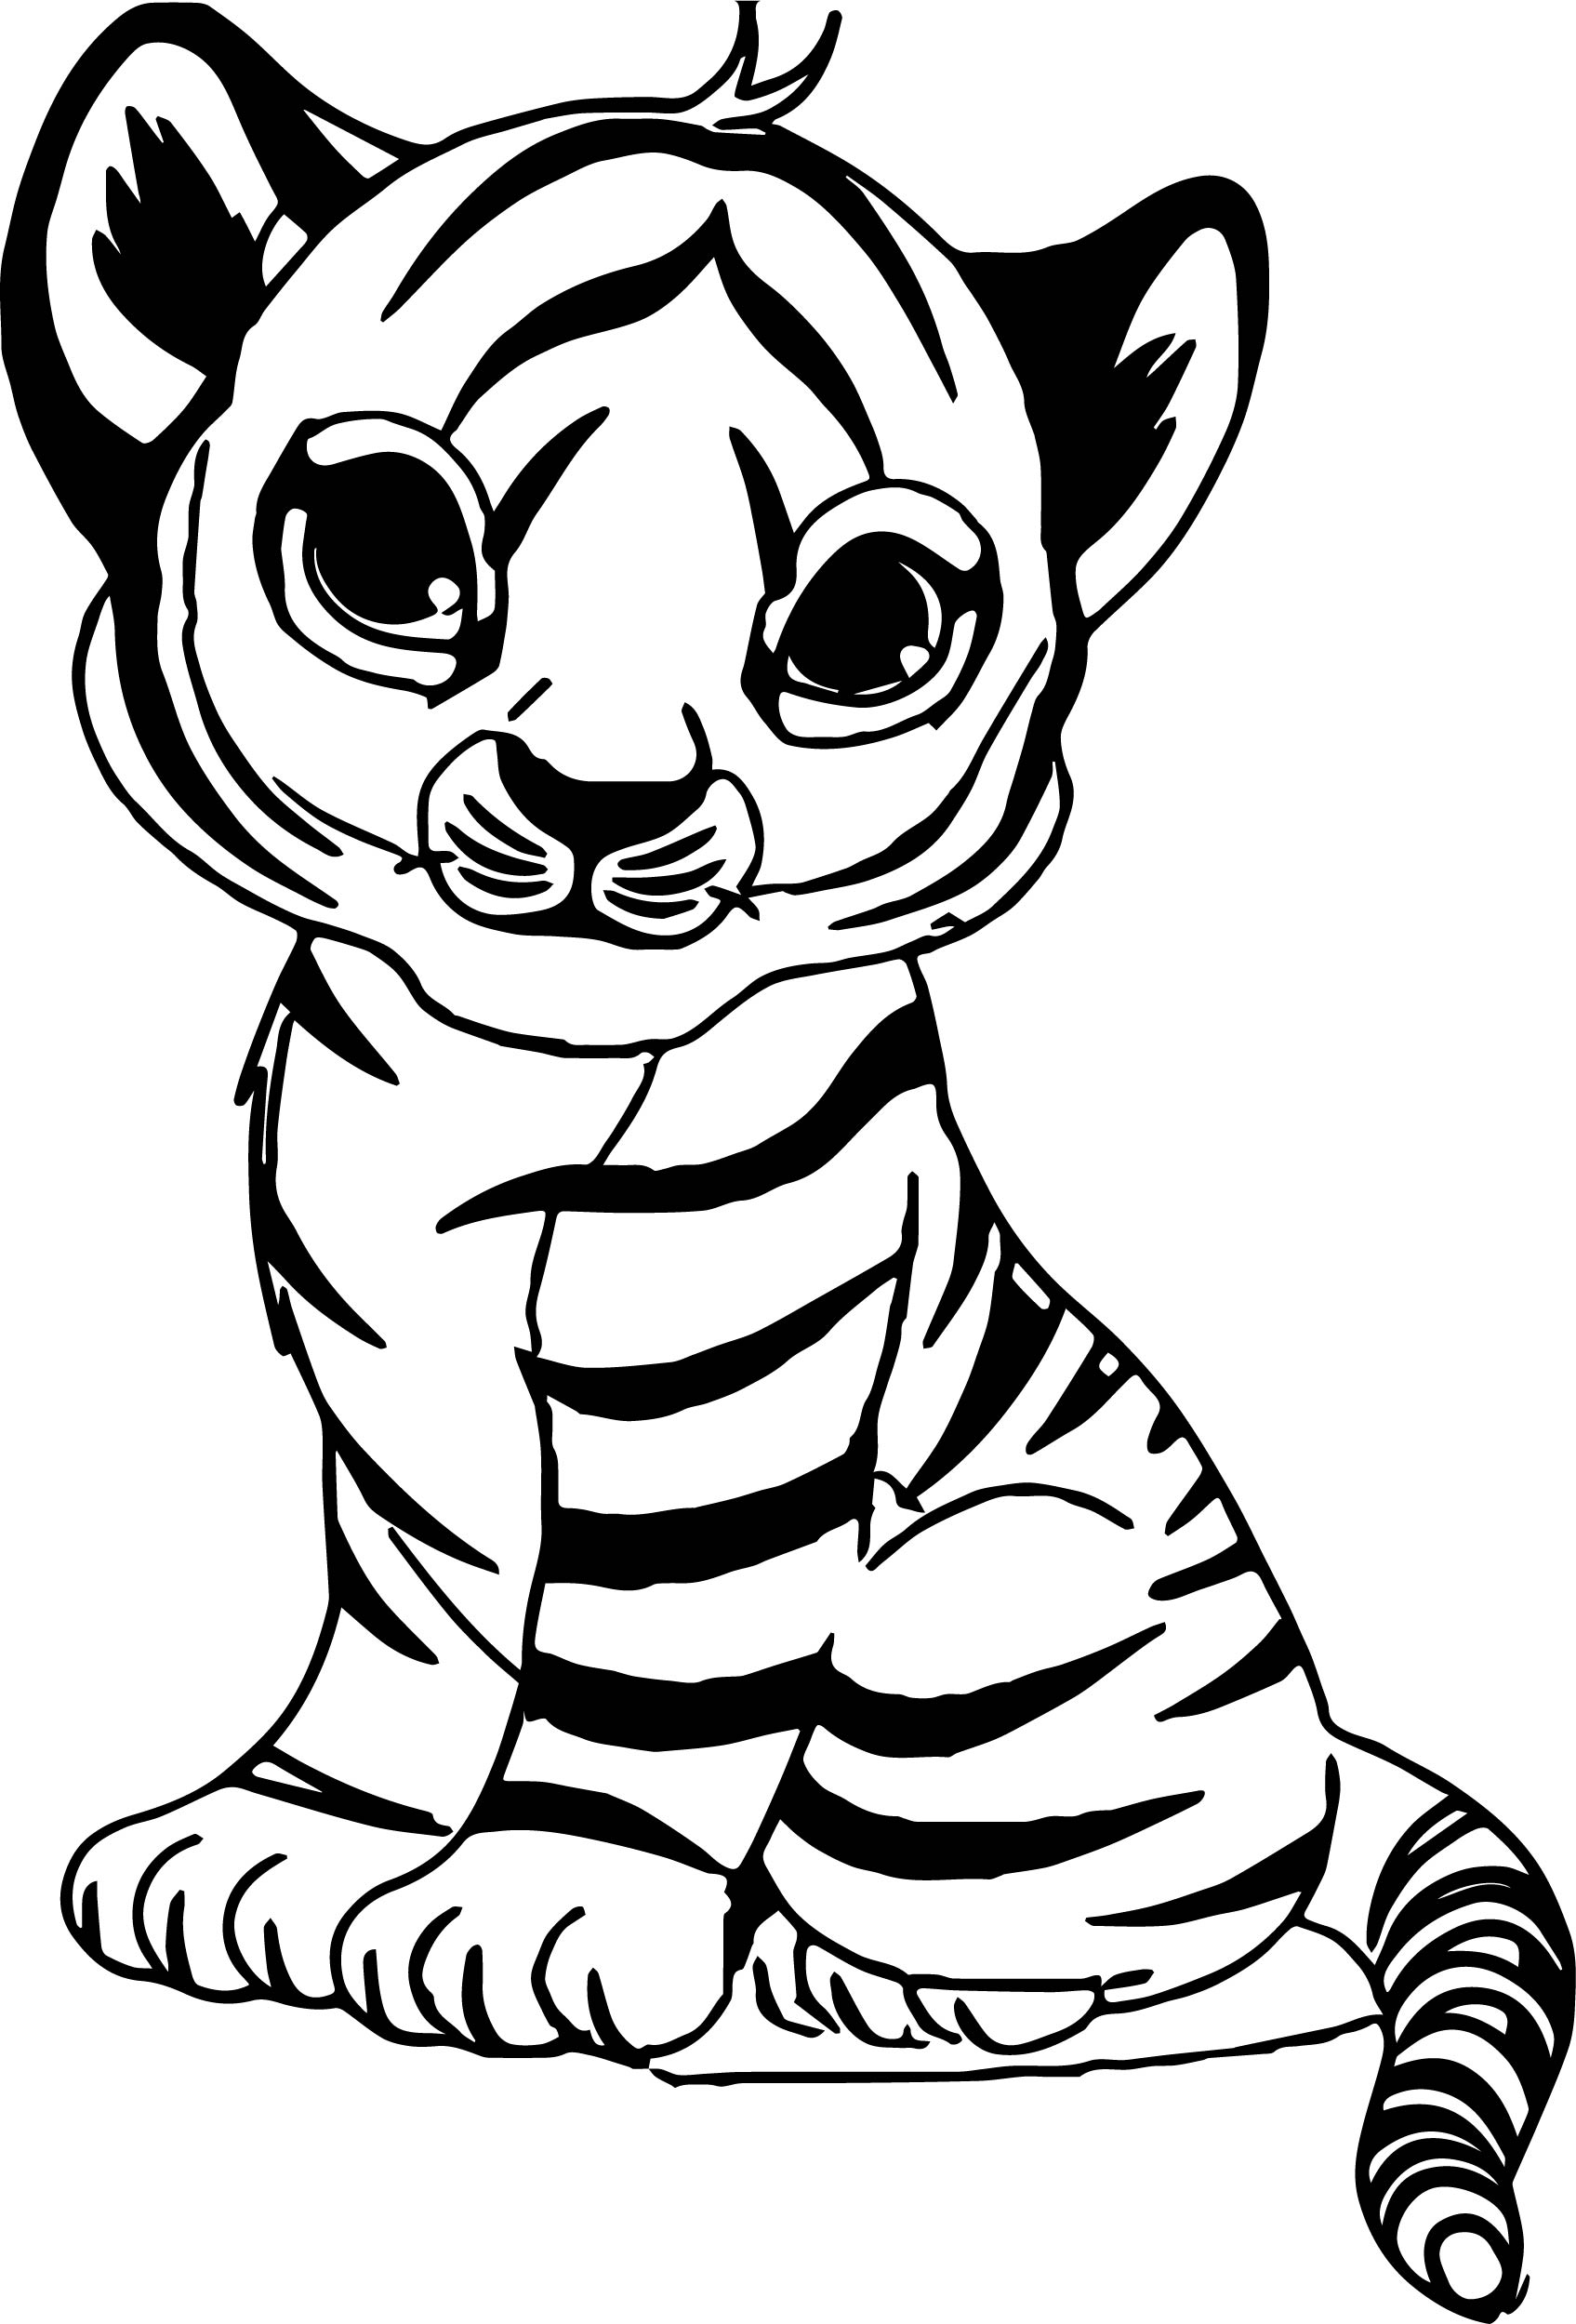 tiger printable coloring pages tiger adult coloring page printable pdf by thinkprintableart tiger coloring pages printable